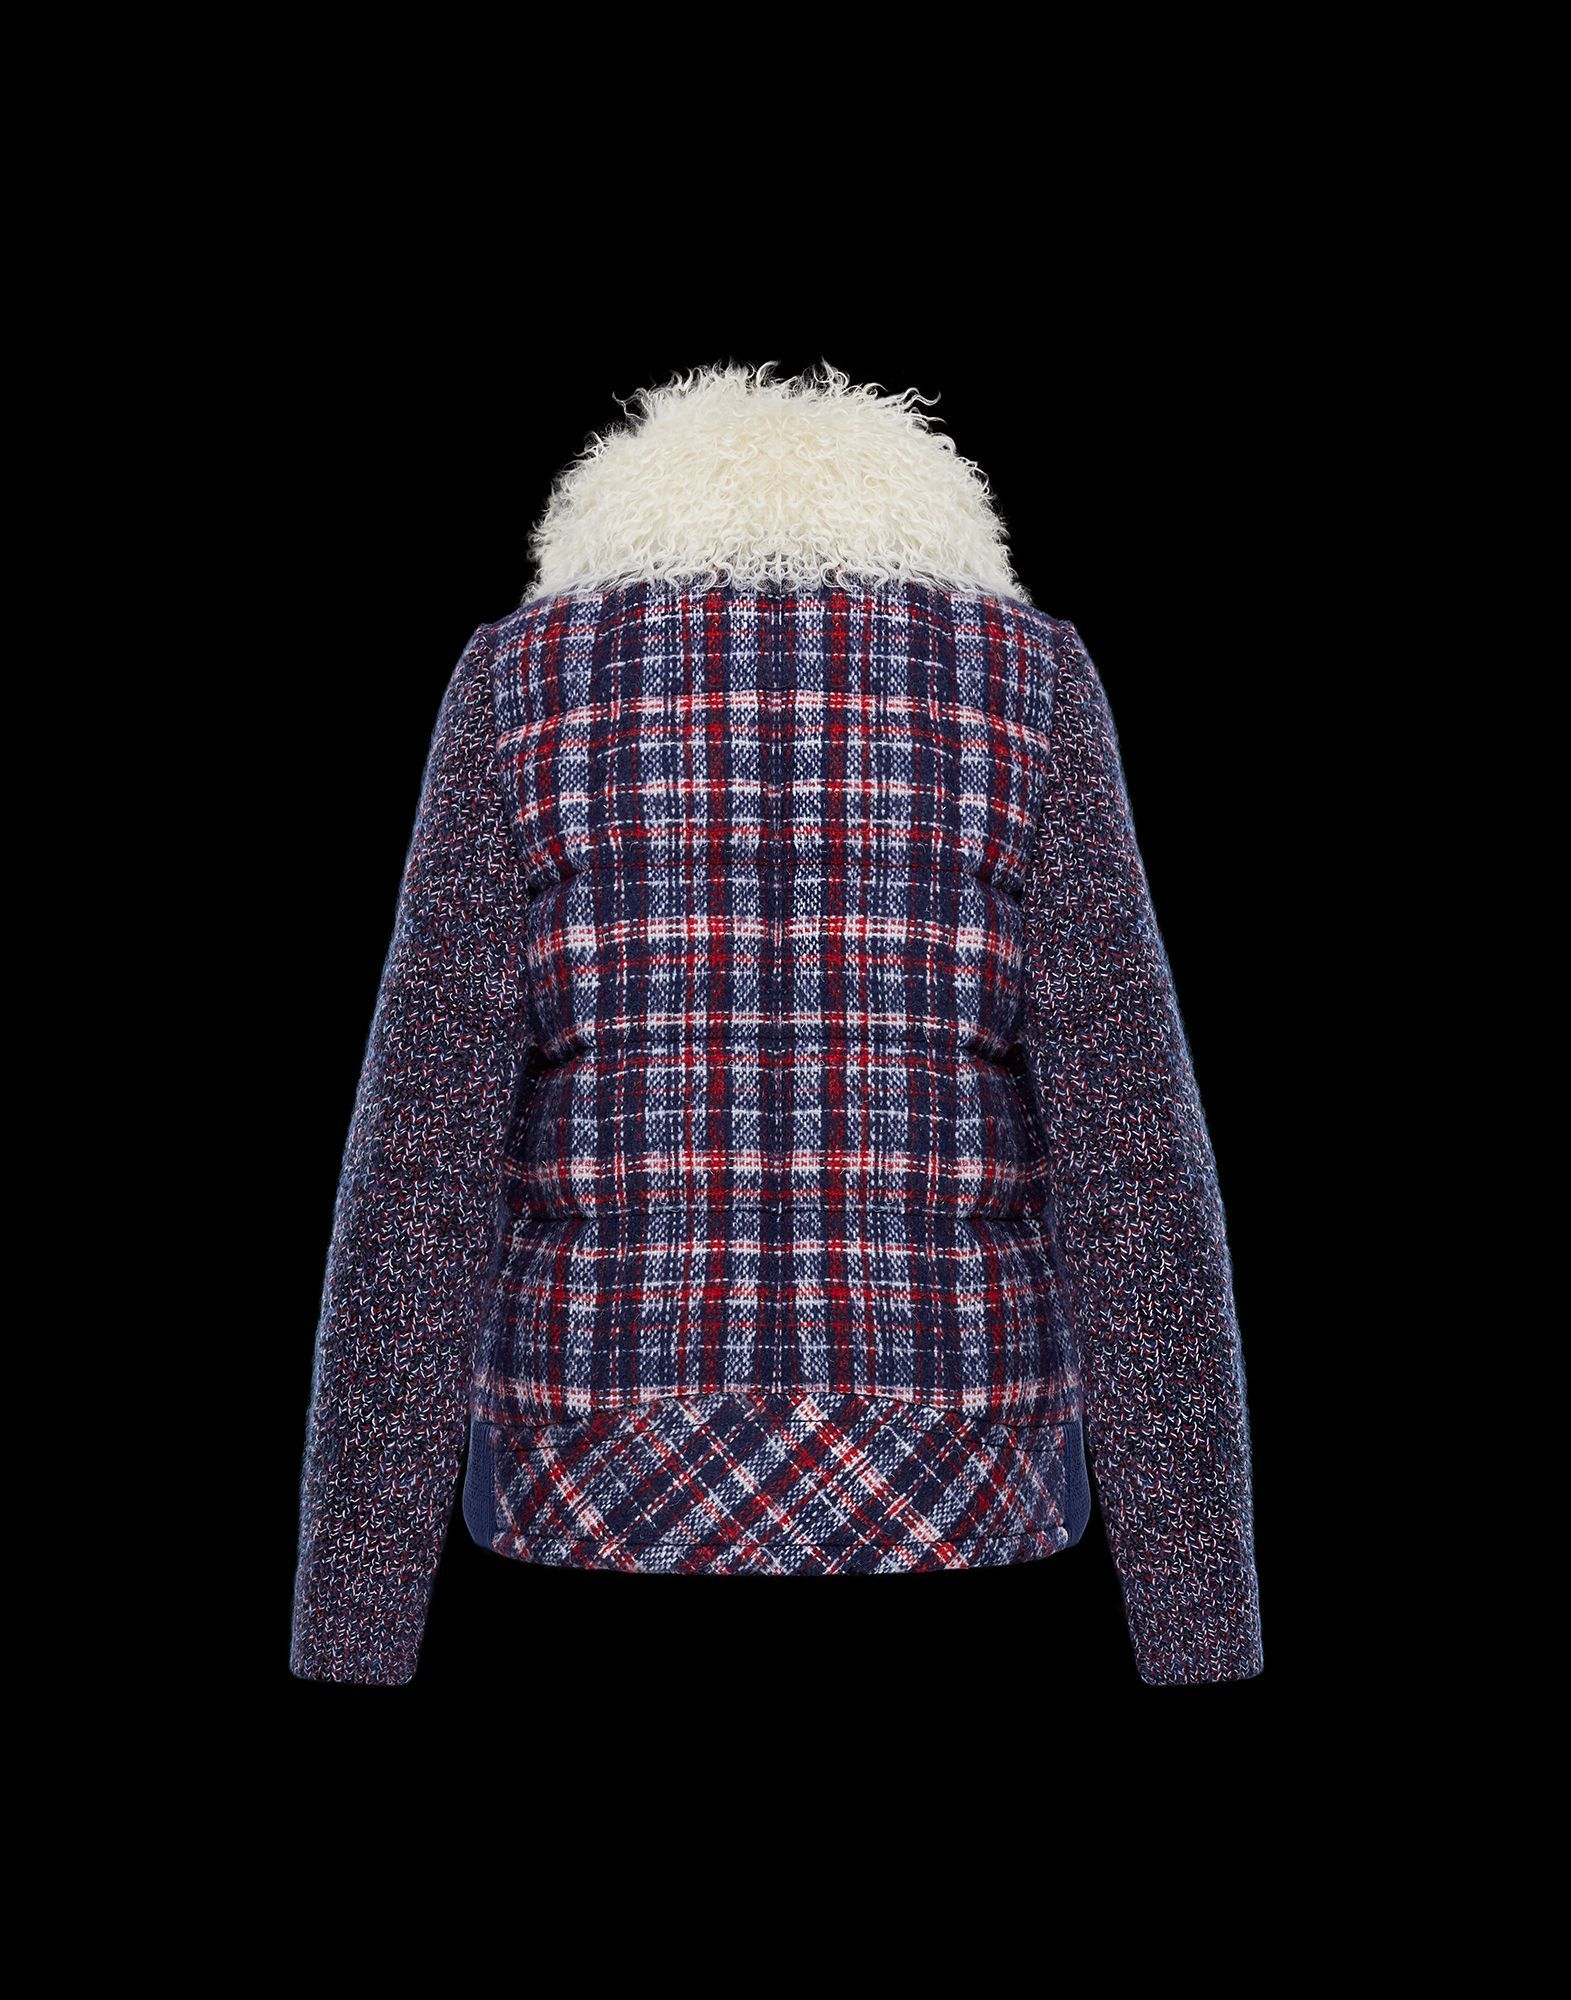 17-18AW MONCLER GRENOBLE SOLEIL ウールモヘアコート 本店買付